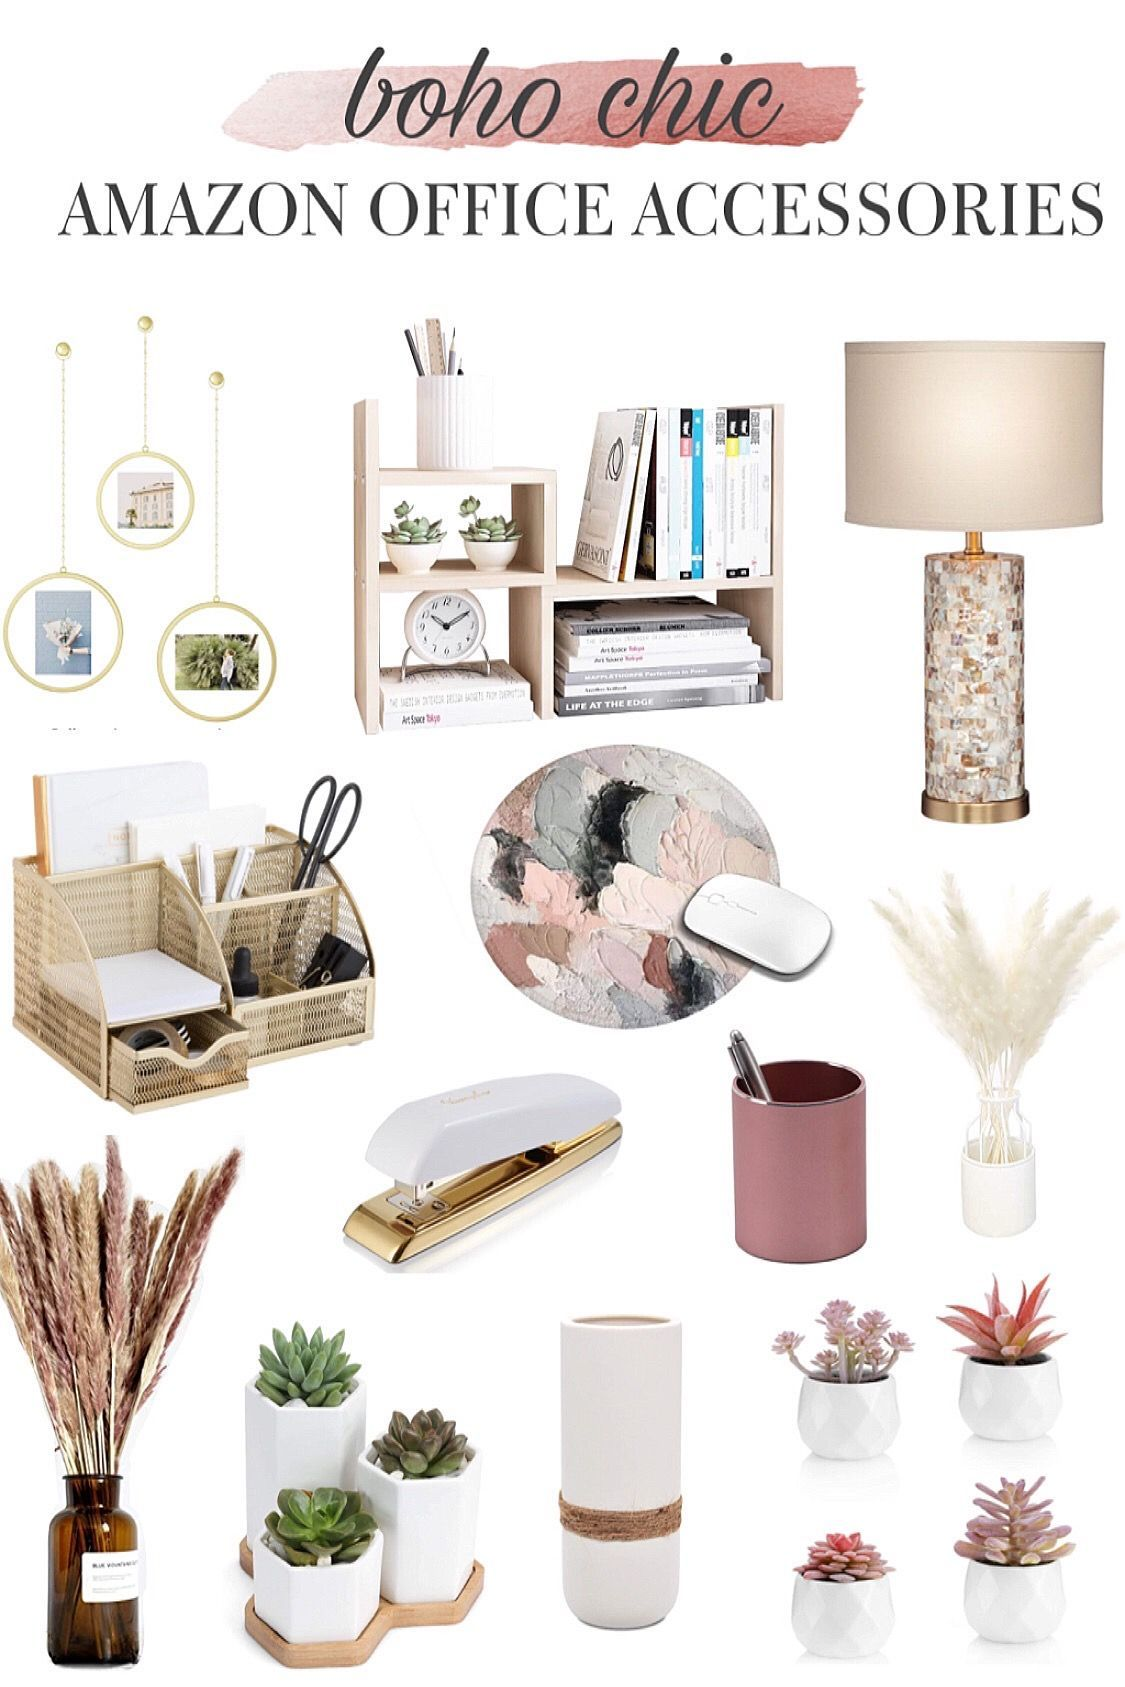 Affordable home decor to inspire your boho spirit. Boho Chic is one of the latest trends in home decor and i'm here to help you find the perfect pieces to implement in your office decor inspo. #houseinterior #boho #bohodecor #amazondecor #amazonfinds